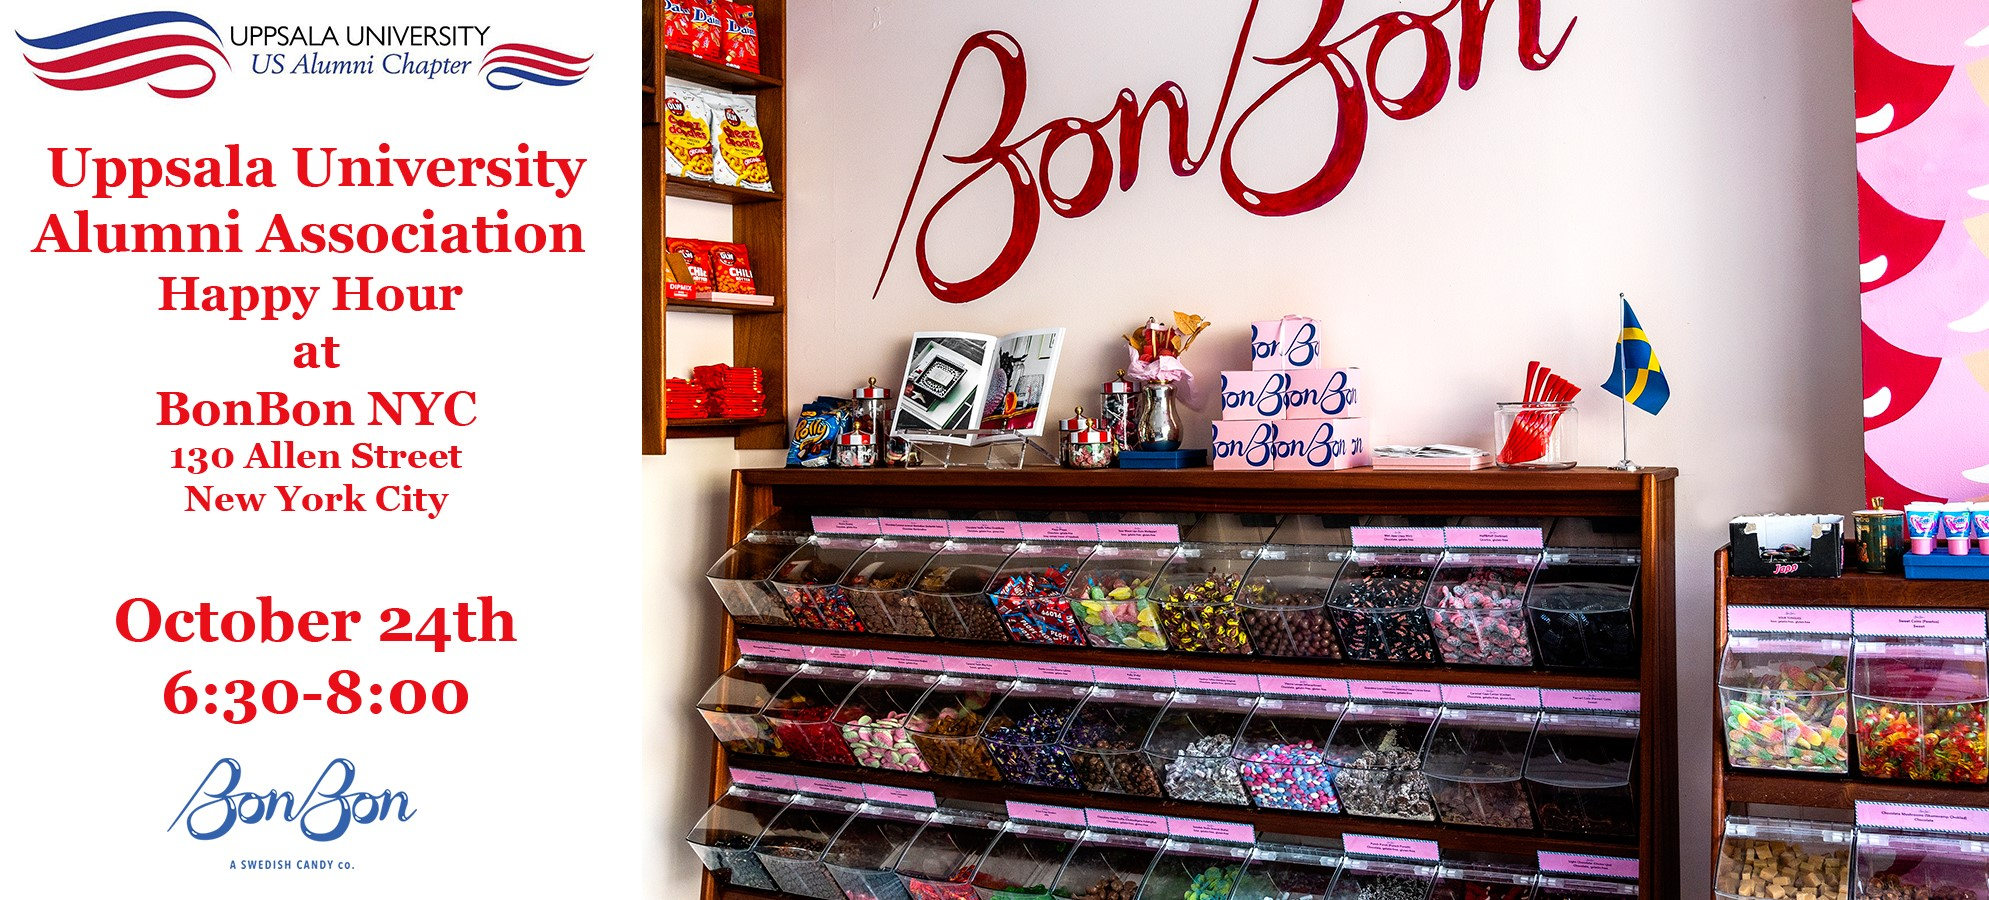 New York: Happy Hour at BonBon